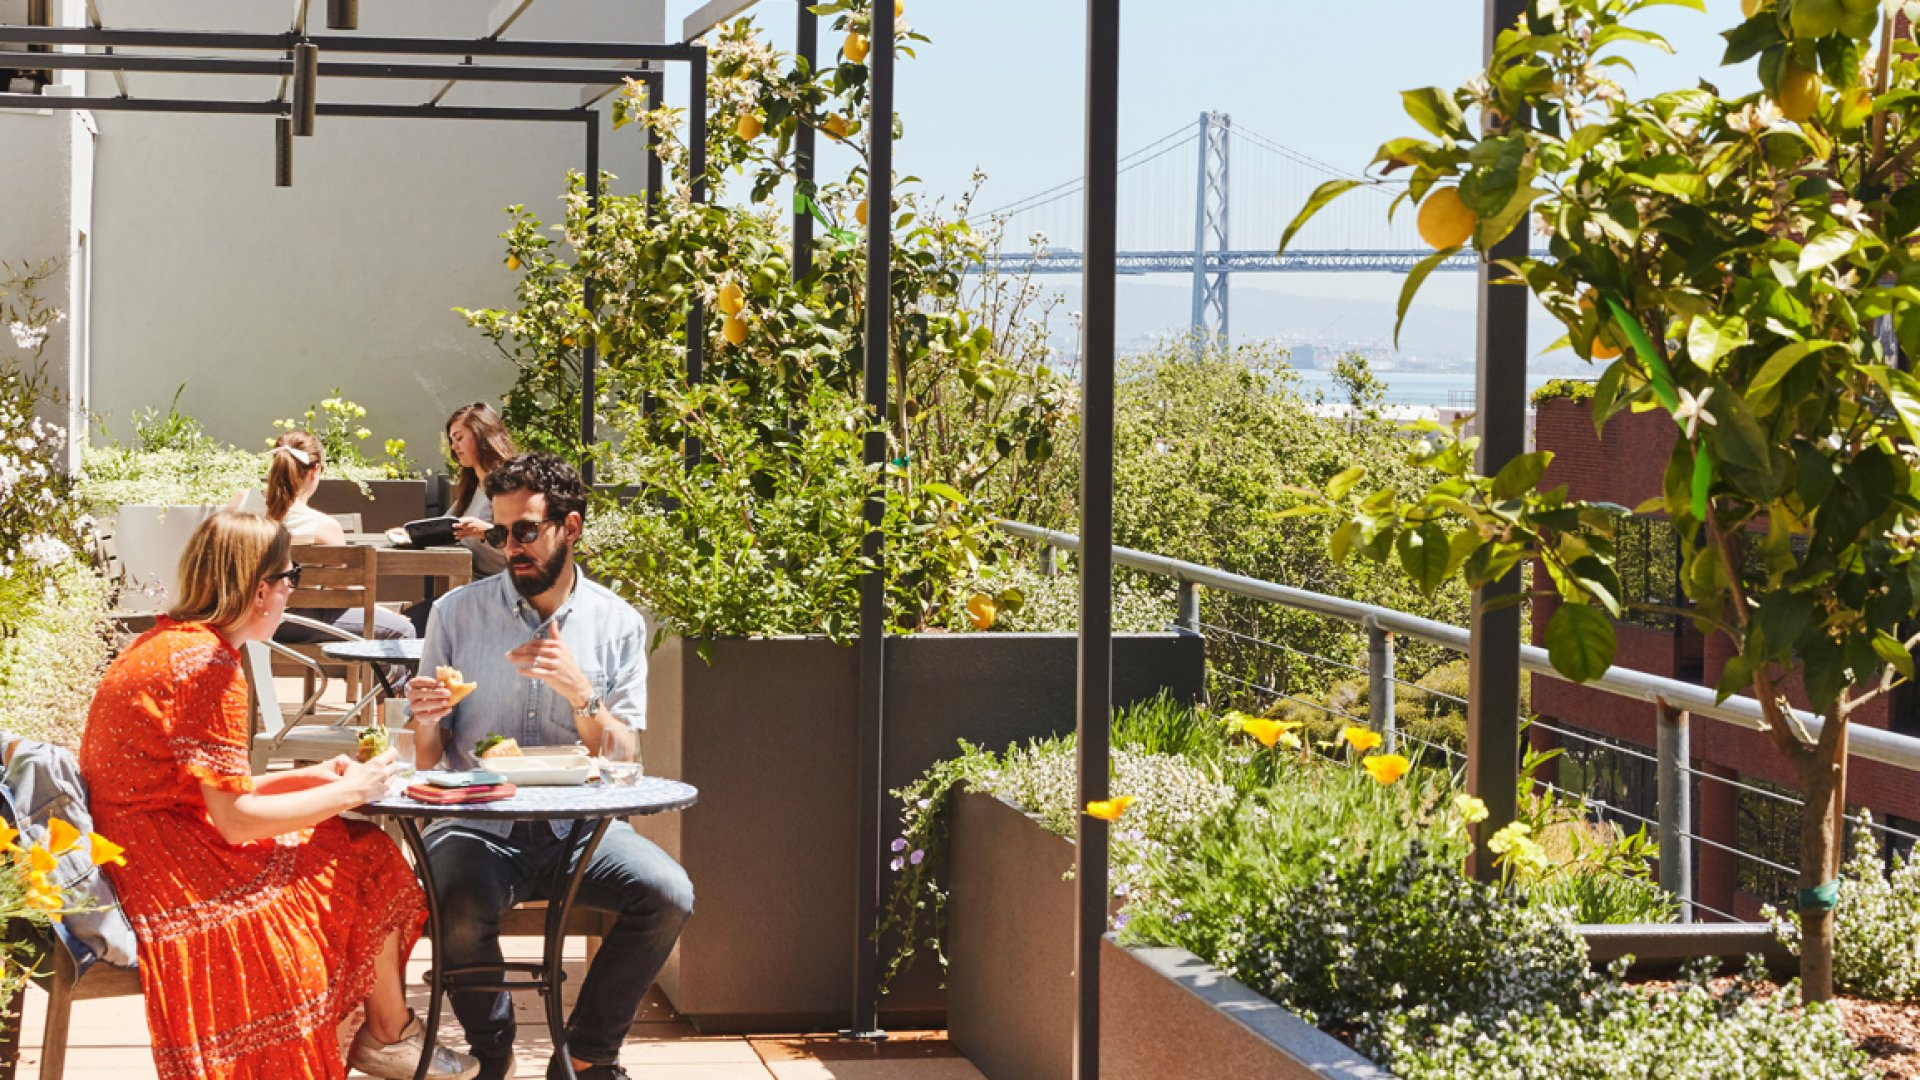 A part of Grove Collaborative's outdoor workspace in San Francisco.